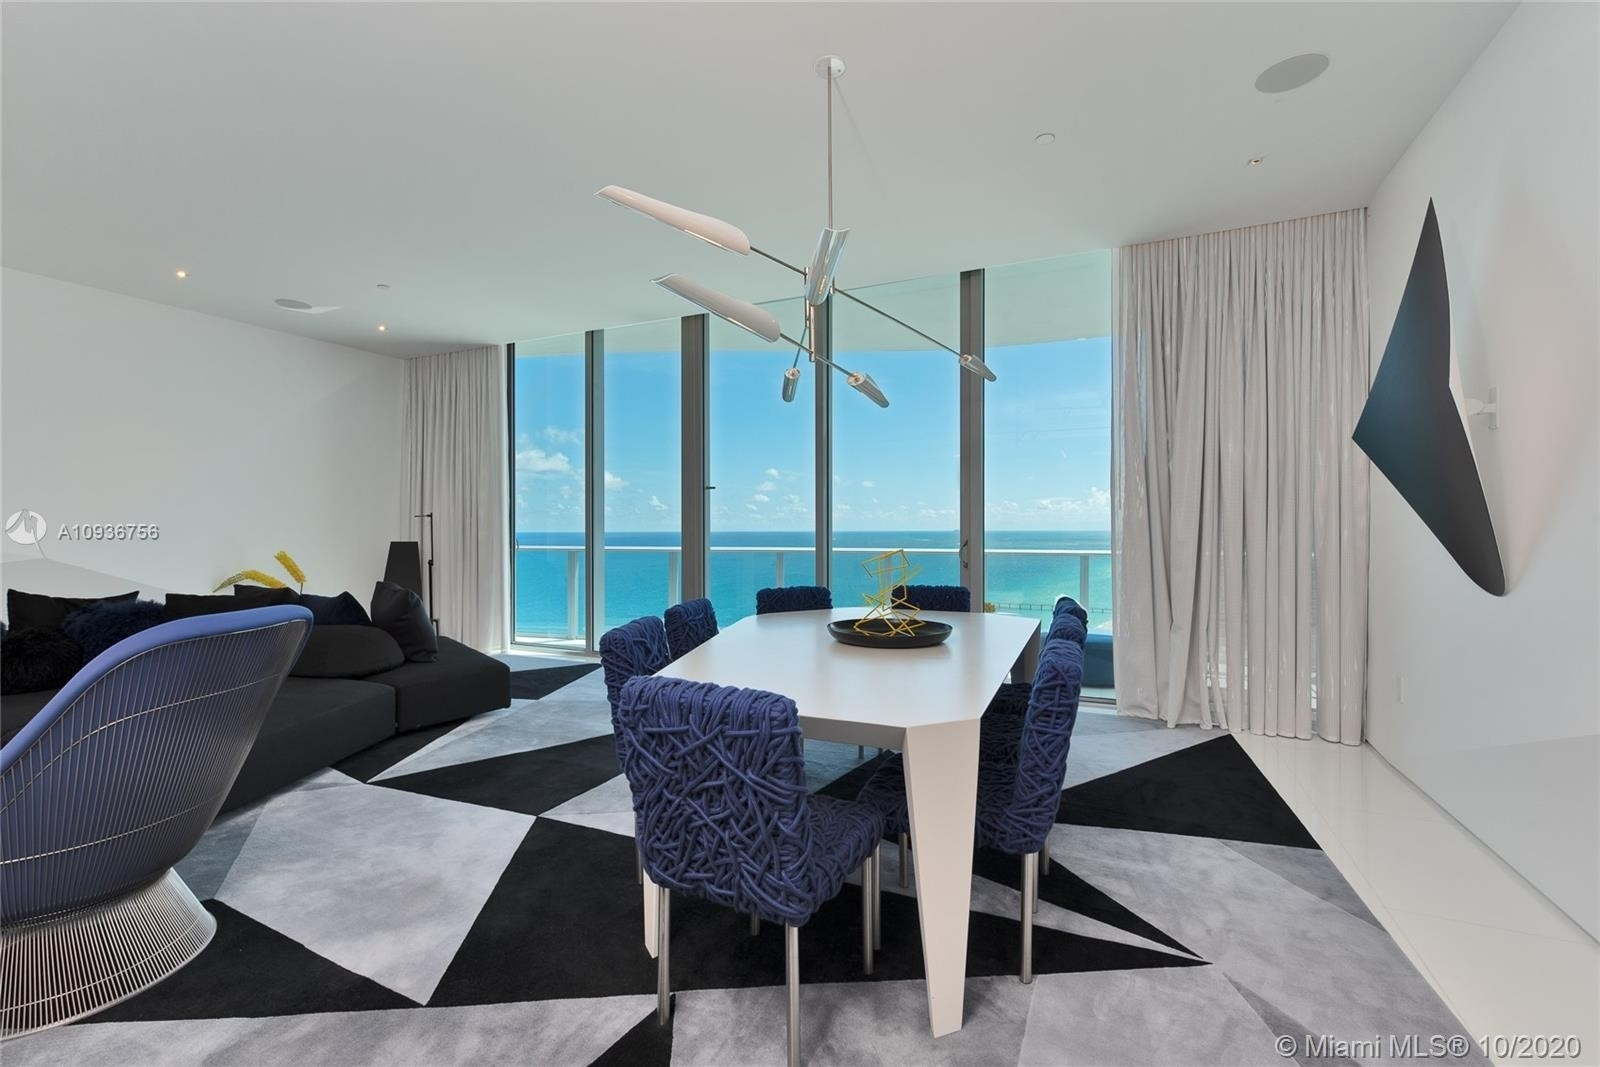 5. Condominiums for Sale at 17475 Collins Ave , 2602 Sunny Isles Beach, FL 33160